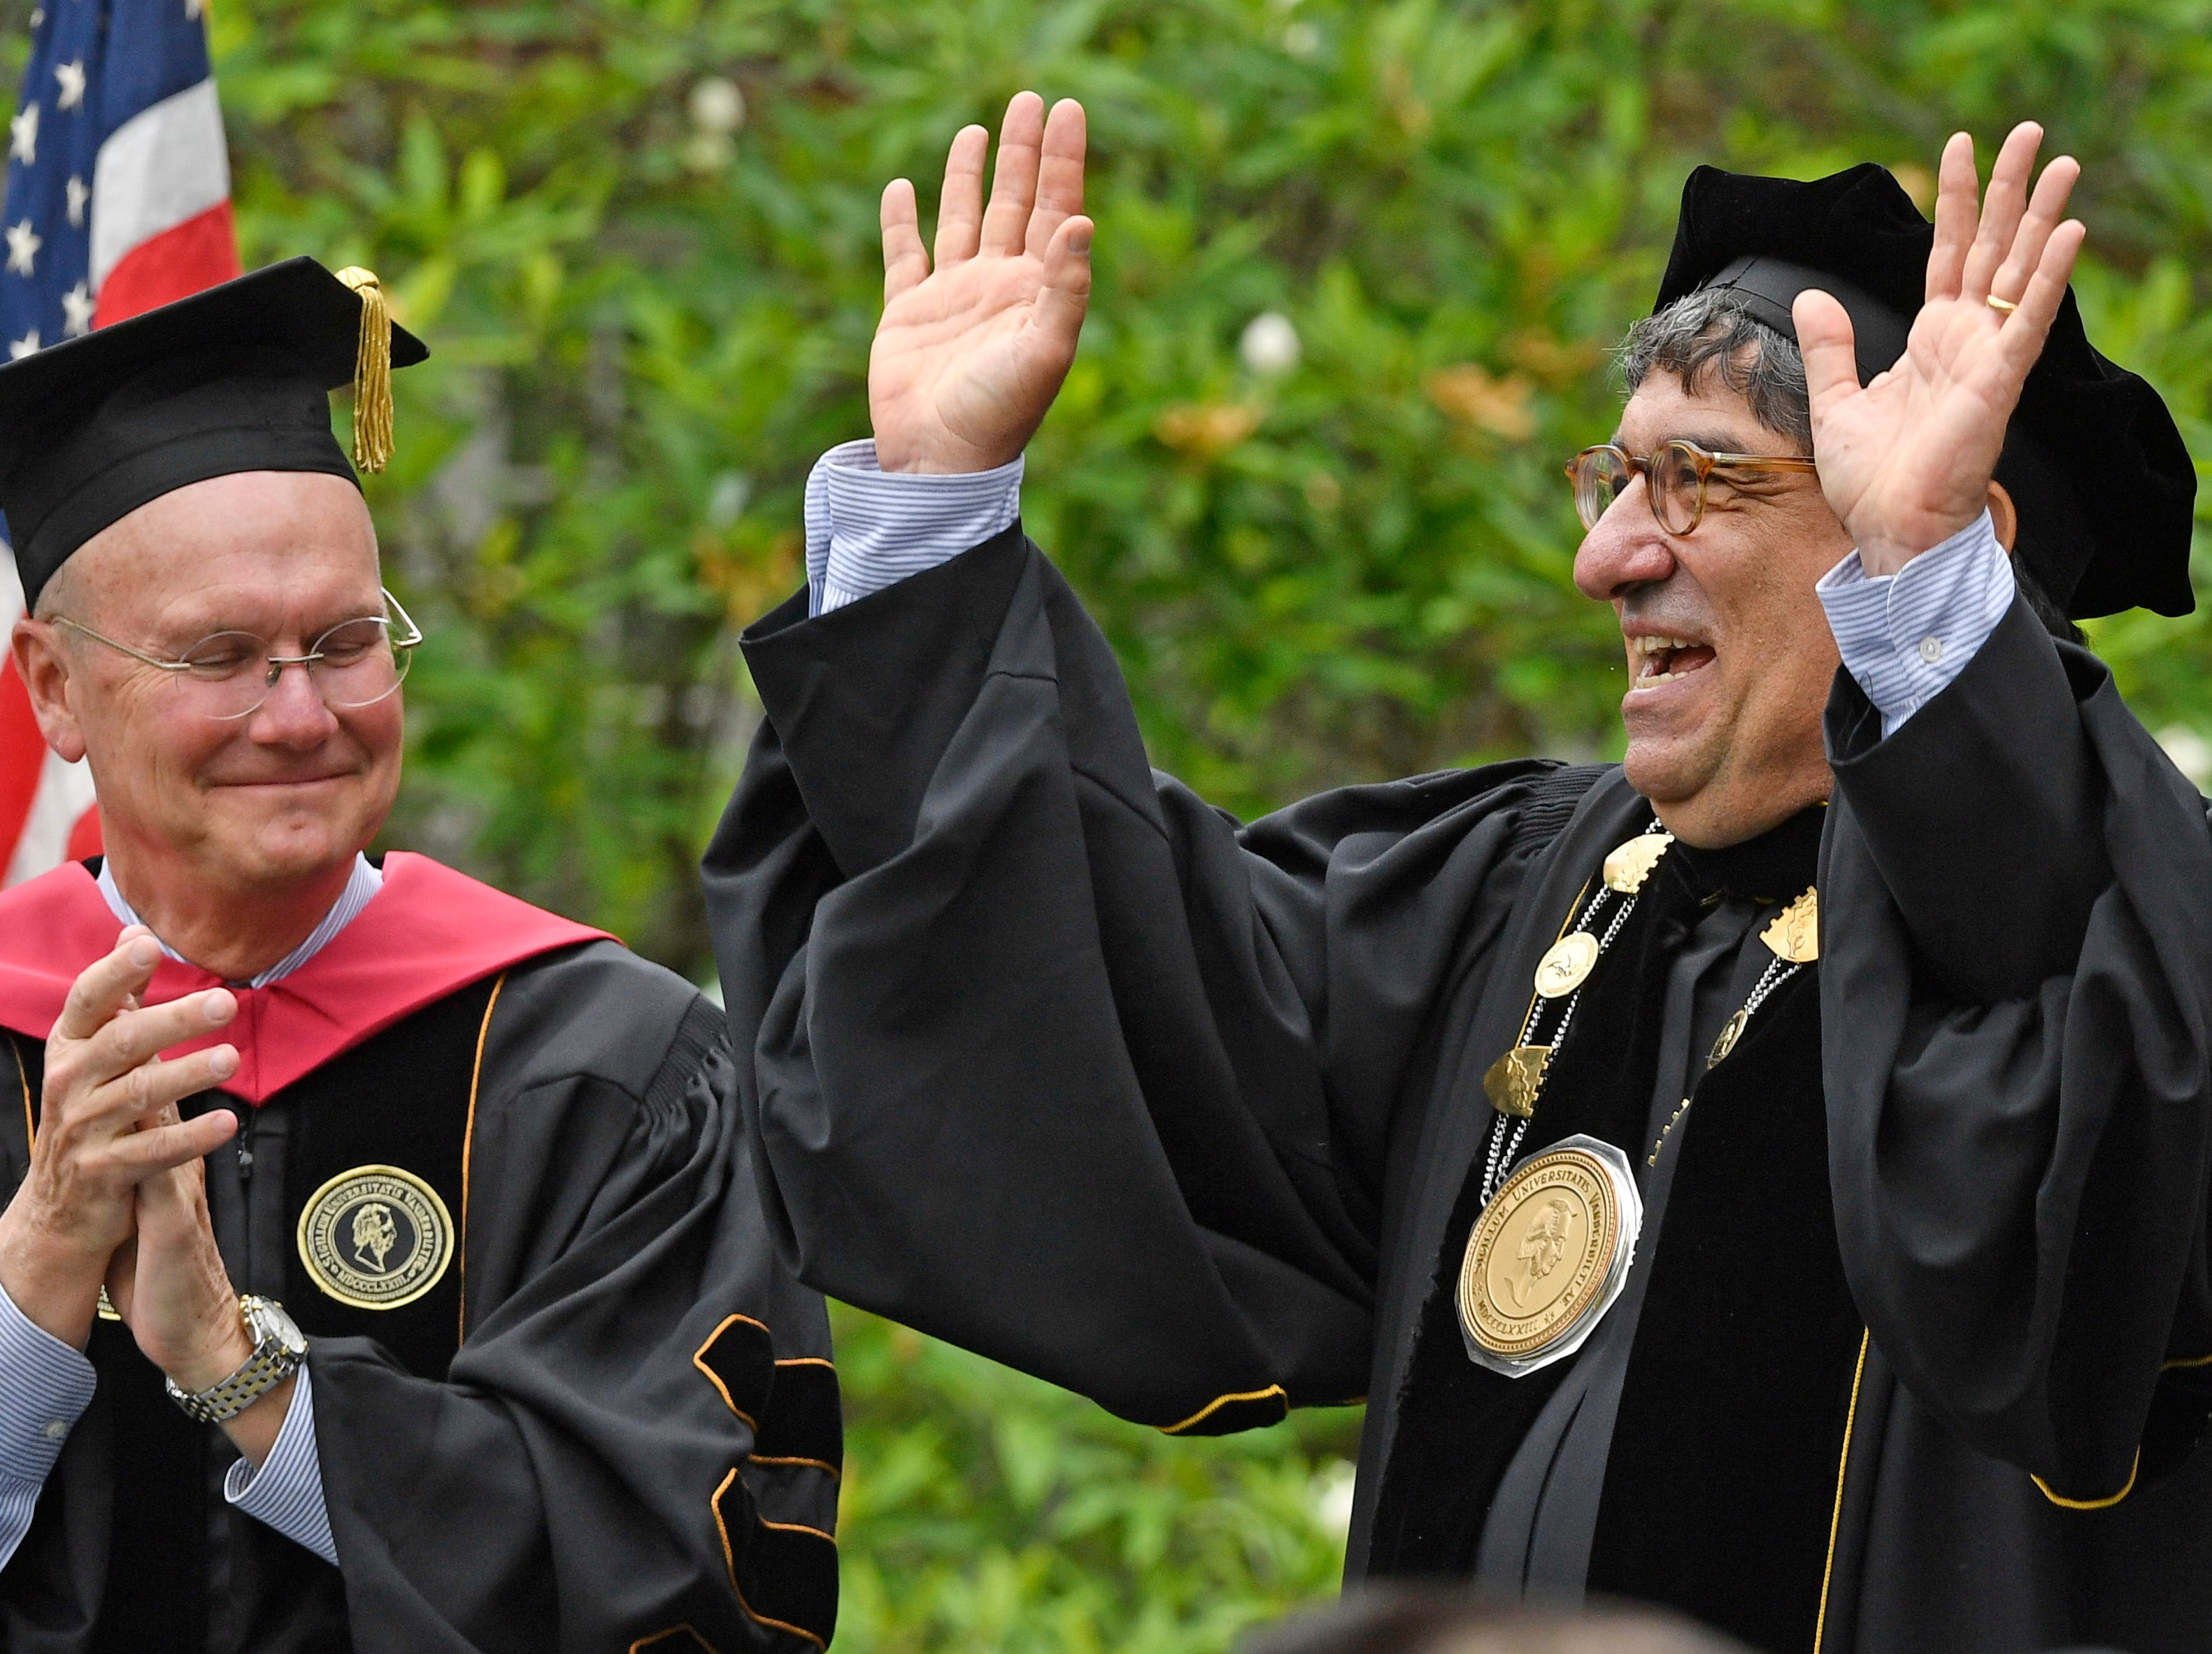 Vanderbilt University Chancellor Nicholas Zeppos waves to the crowd after delivering his commencement speech during Vanderbilt University graduation Friday, May 10, 2019, in Nashville, Tenn.